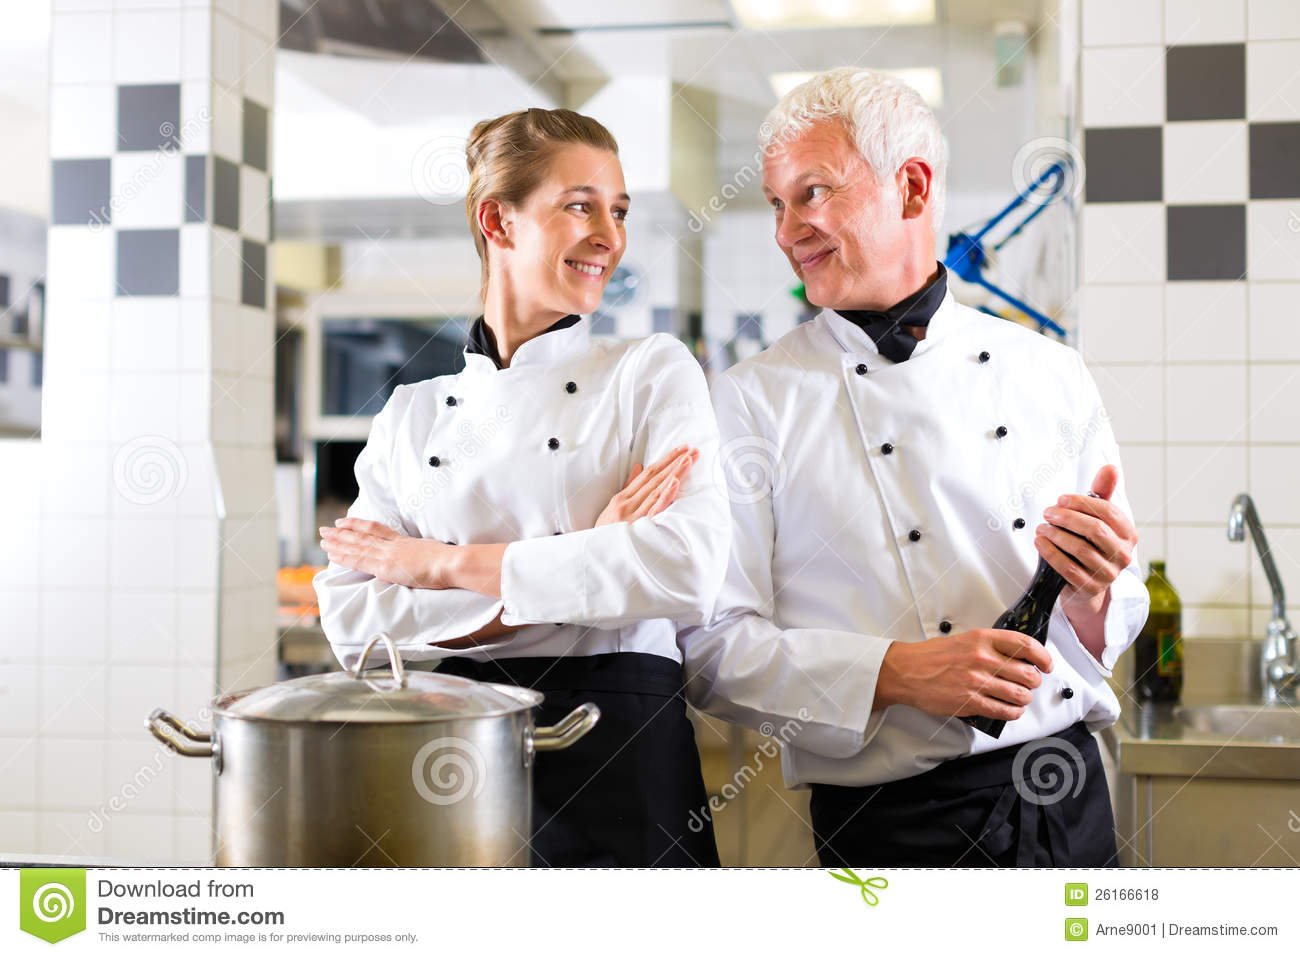 Two Chefs In Team In Hotel Or Restaurant Kitchen Stock Photo - Image ...